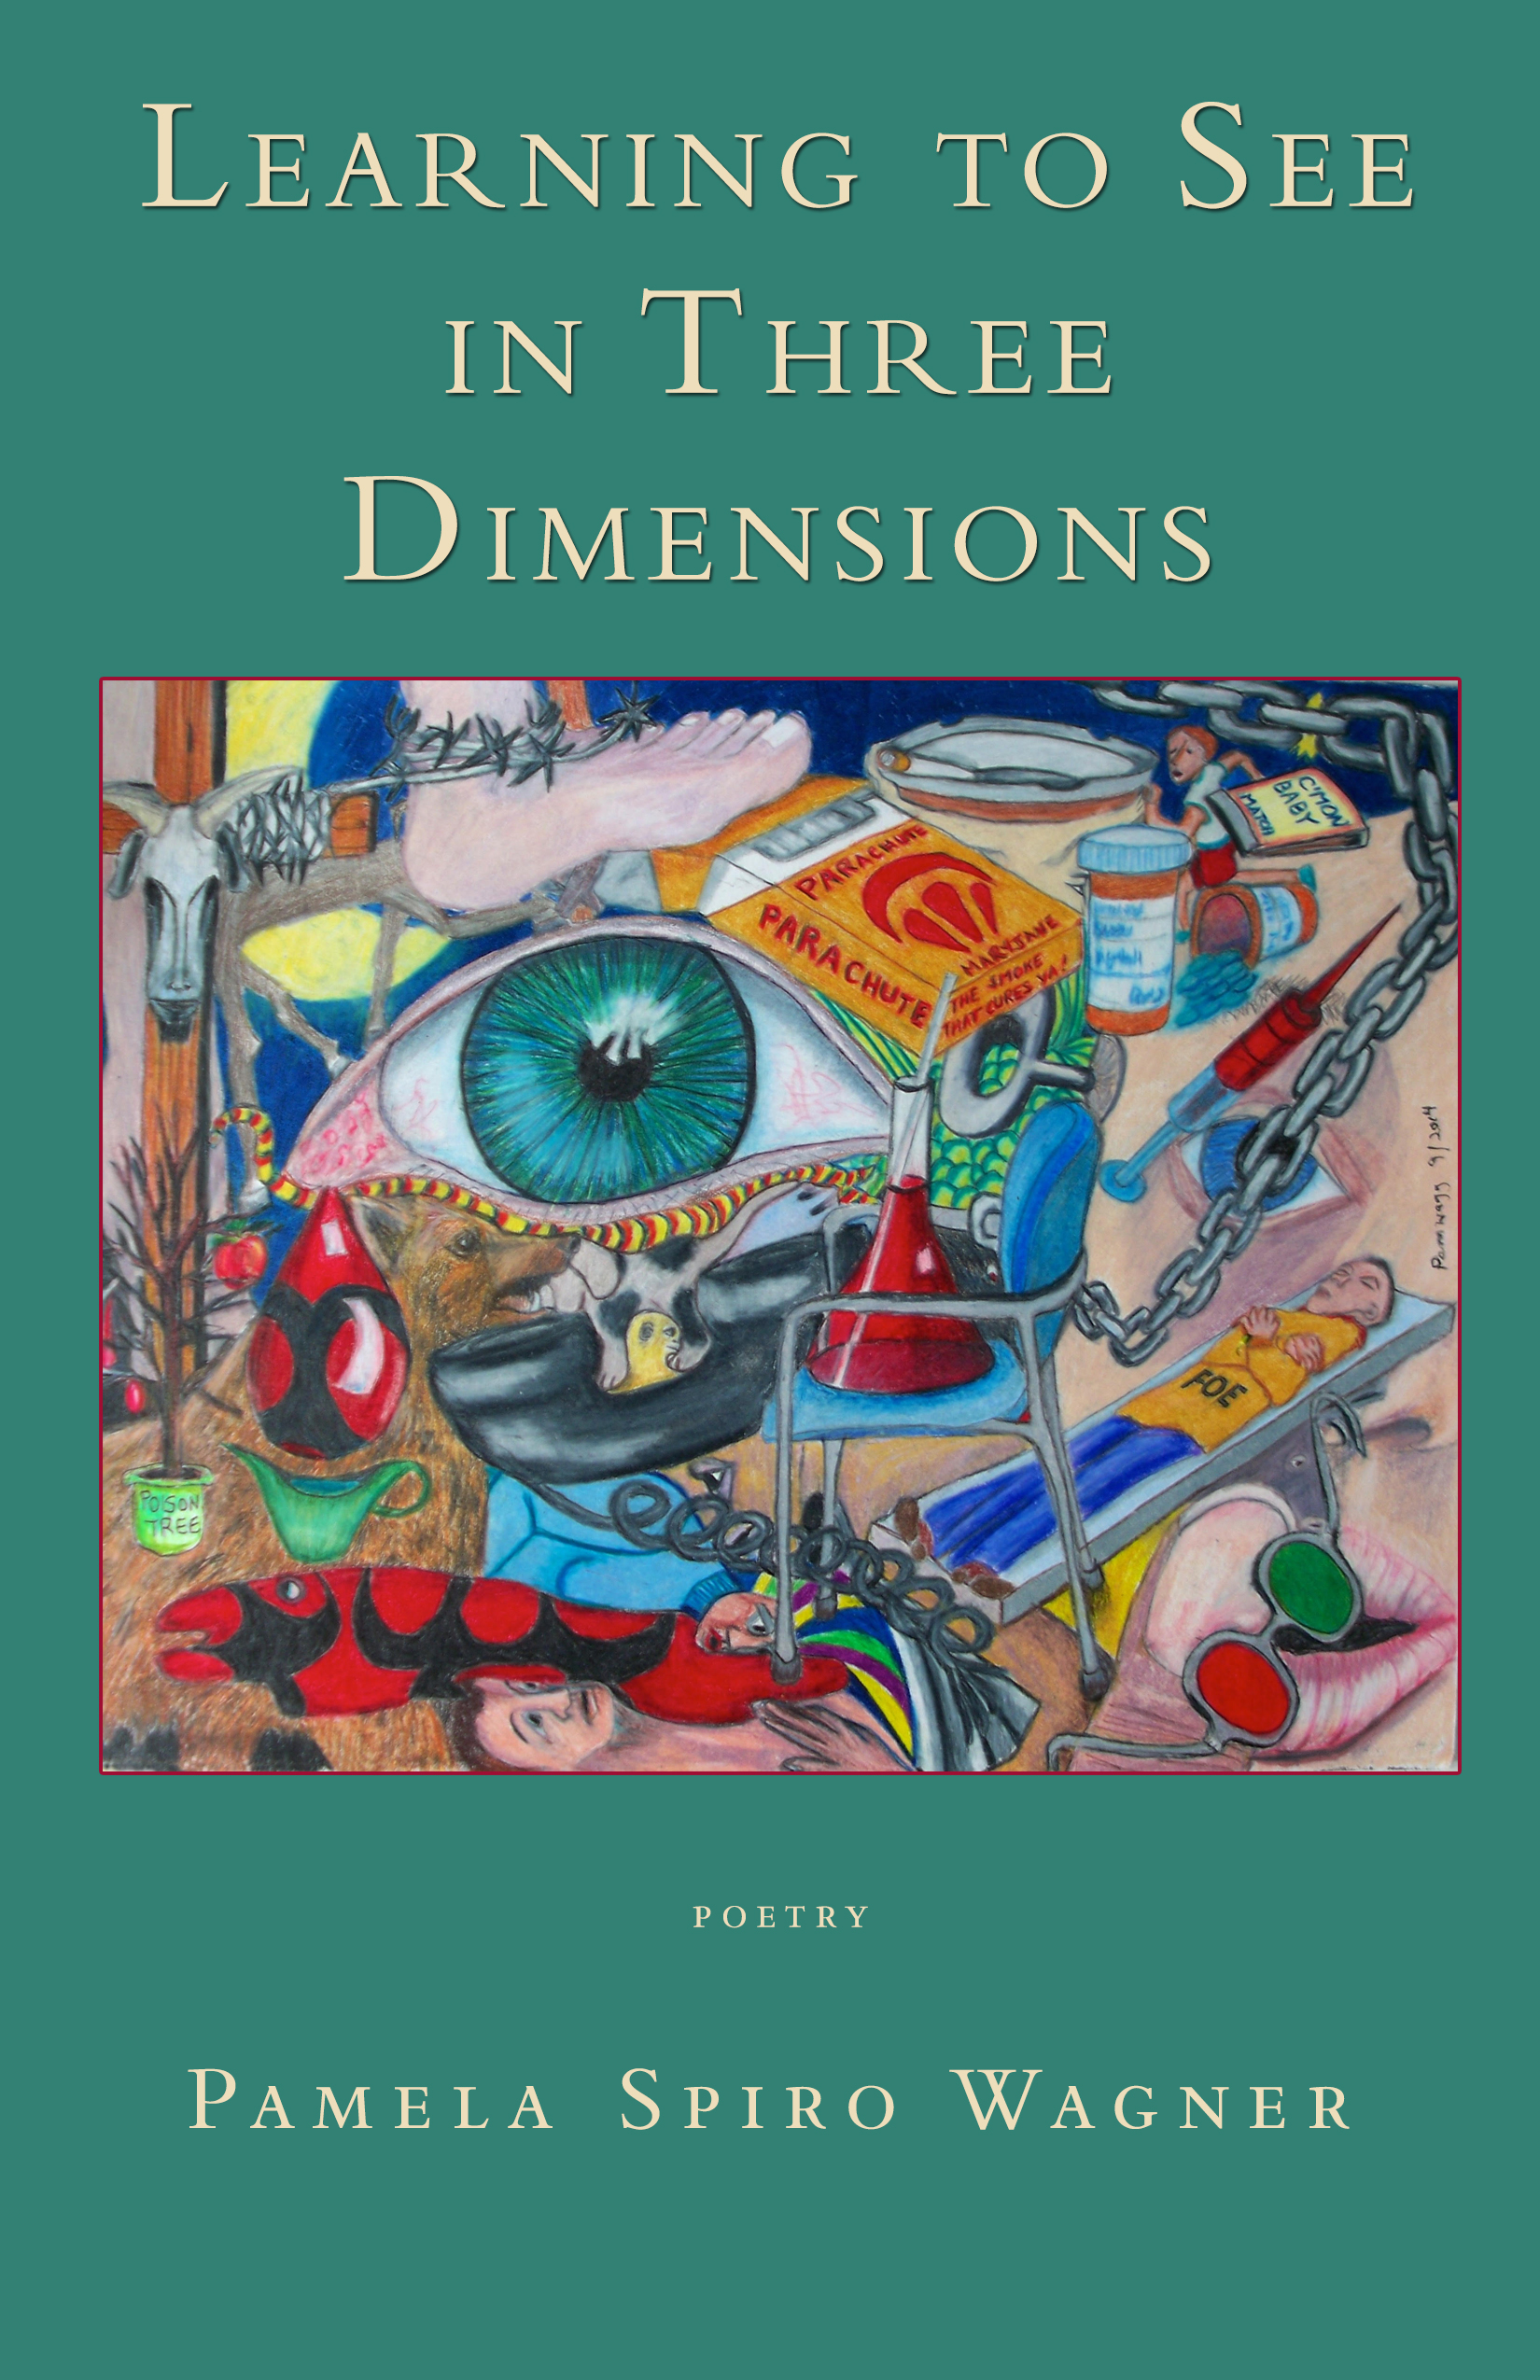 Learning to See in Three Dimensions